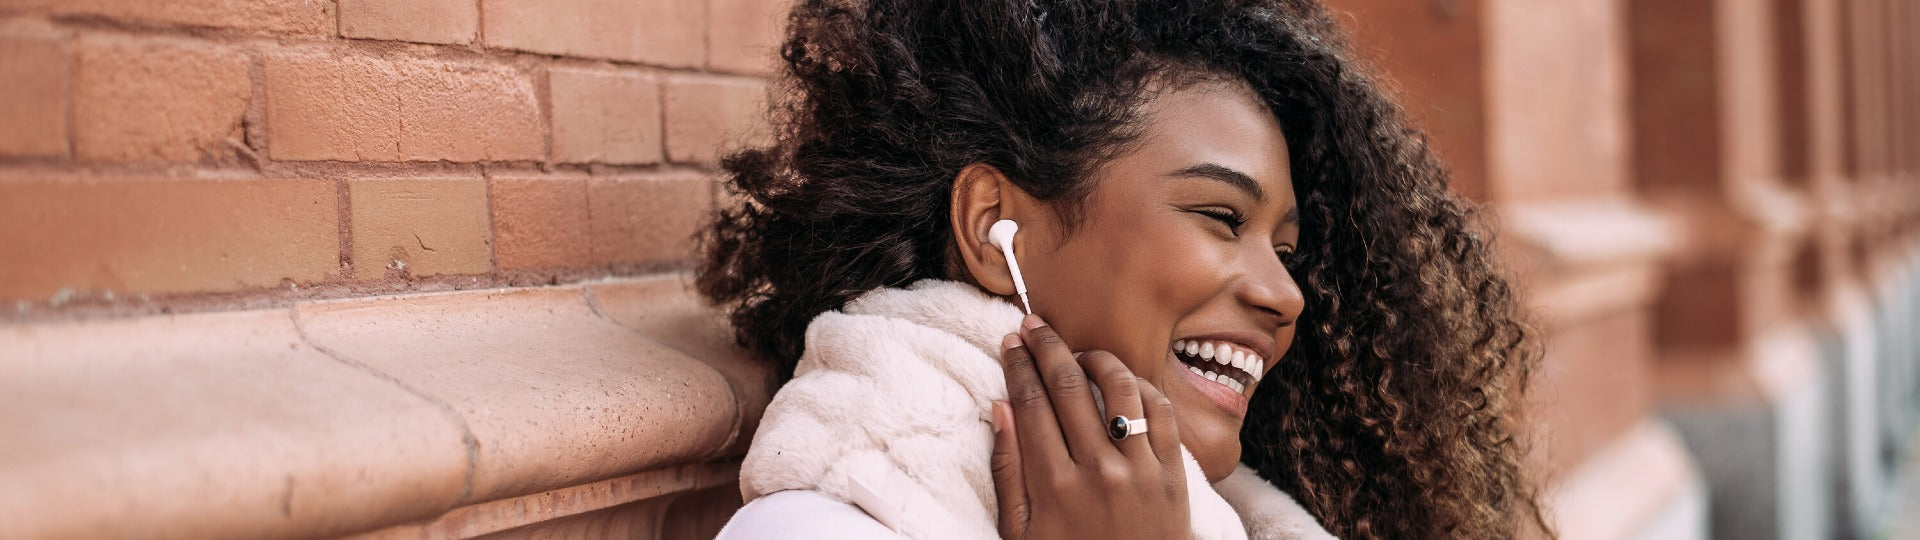 Woman with beautiful naturally curly hair outside listening to her earbud and laughing